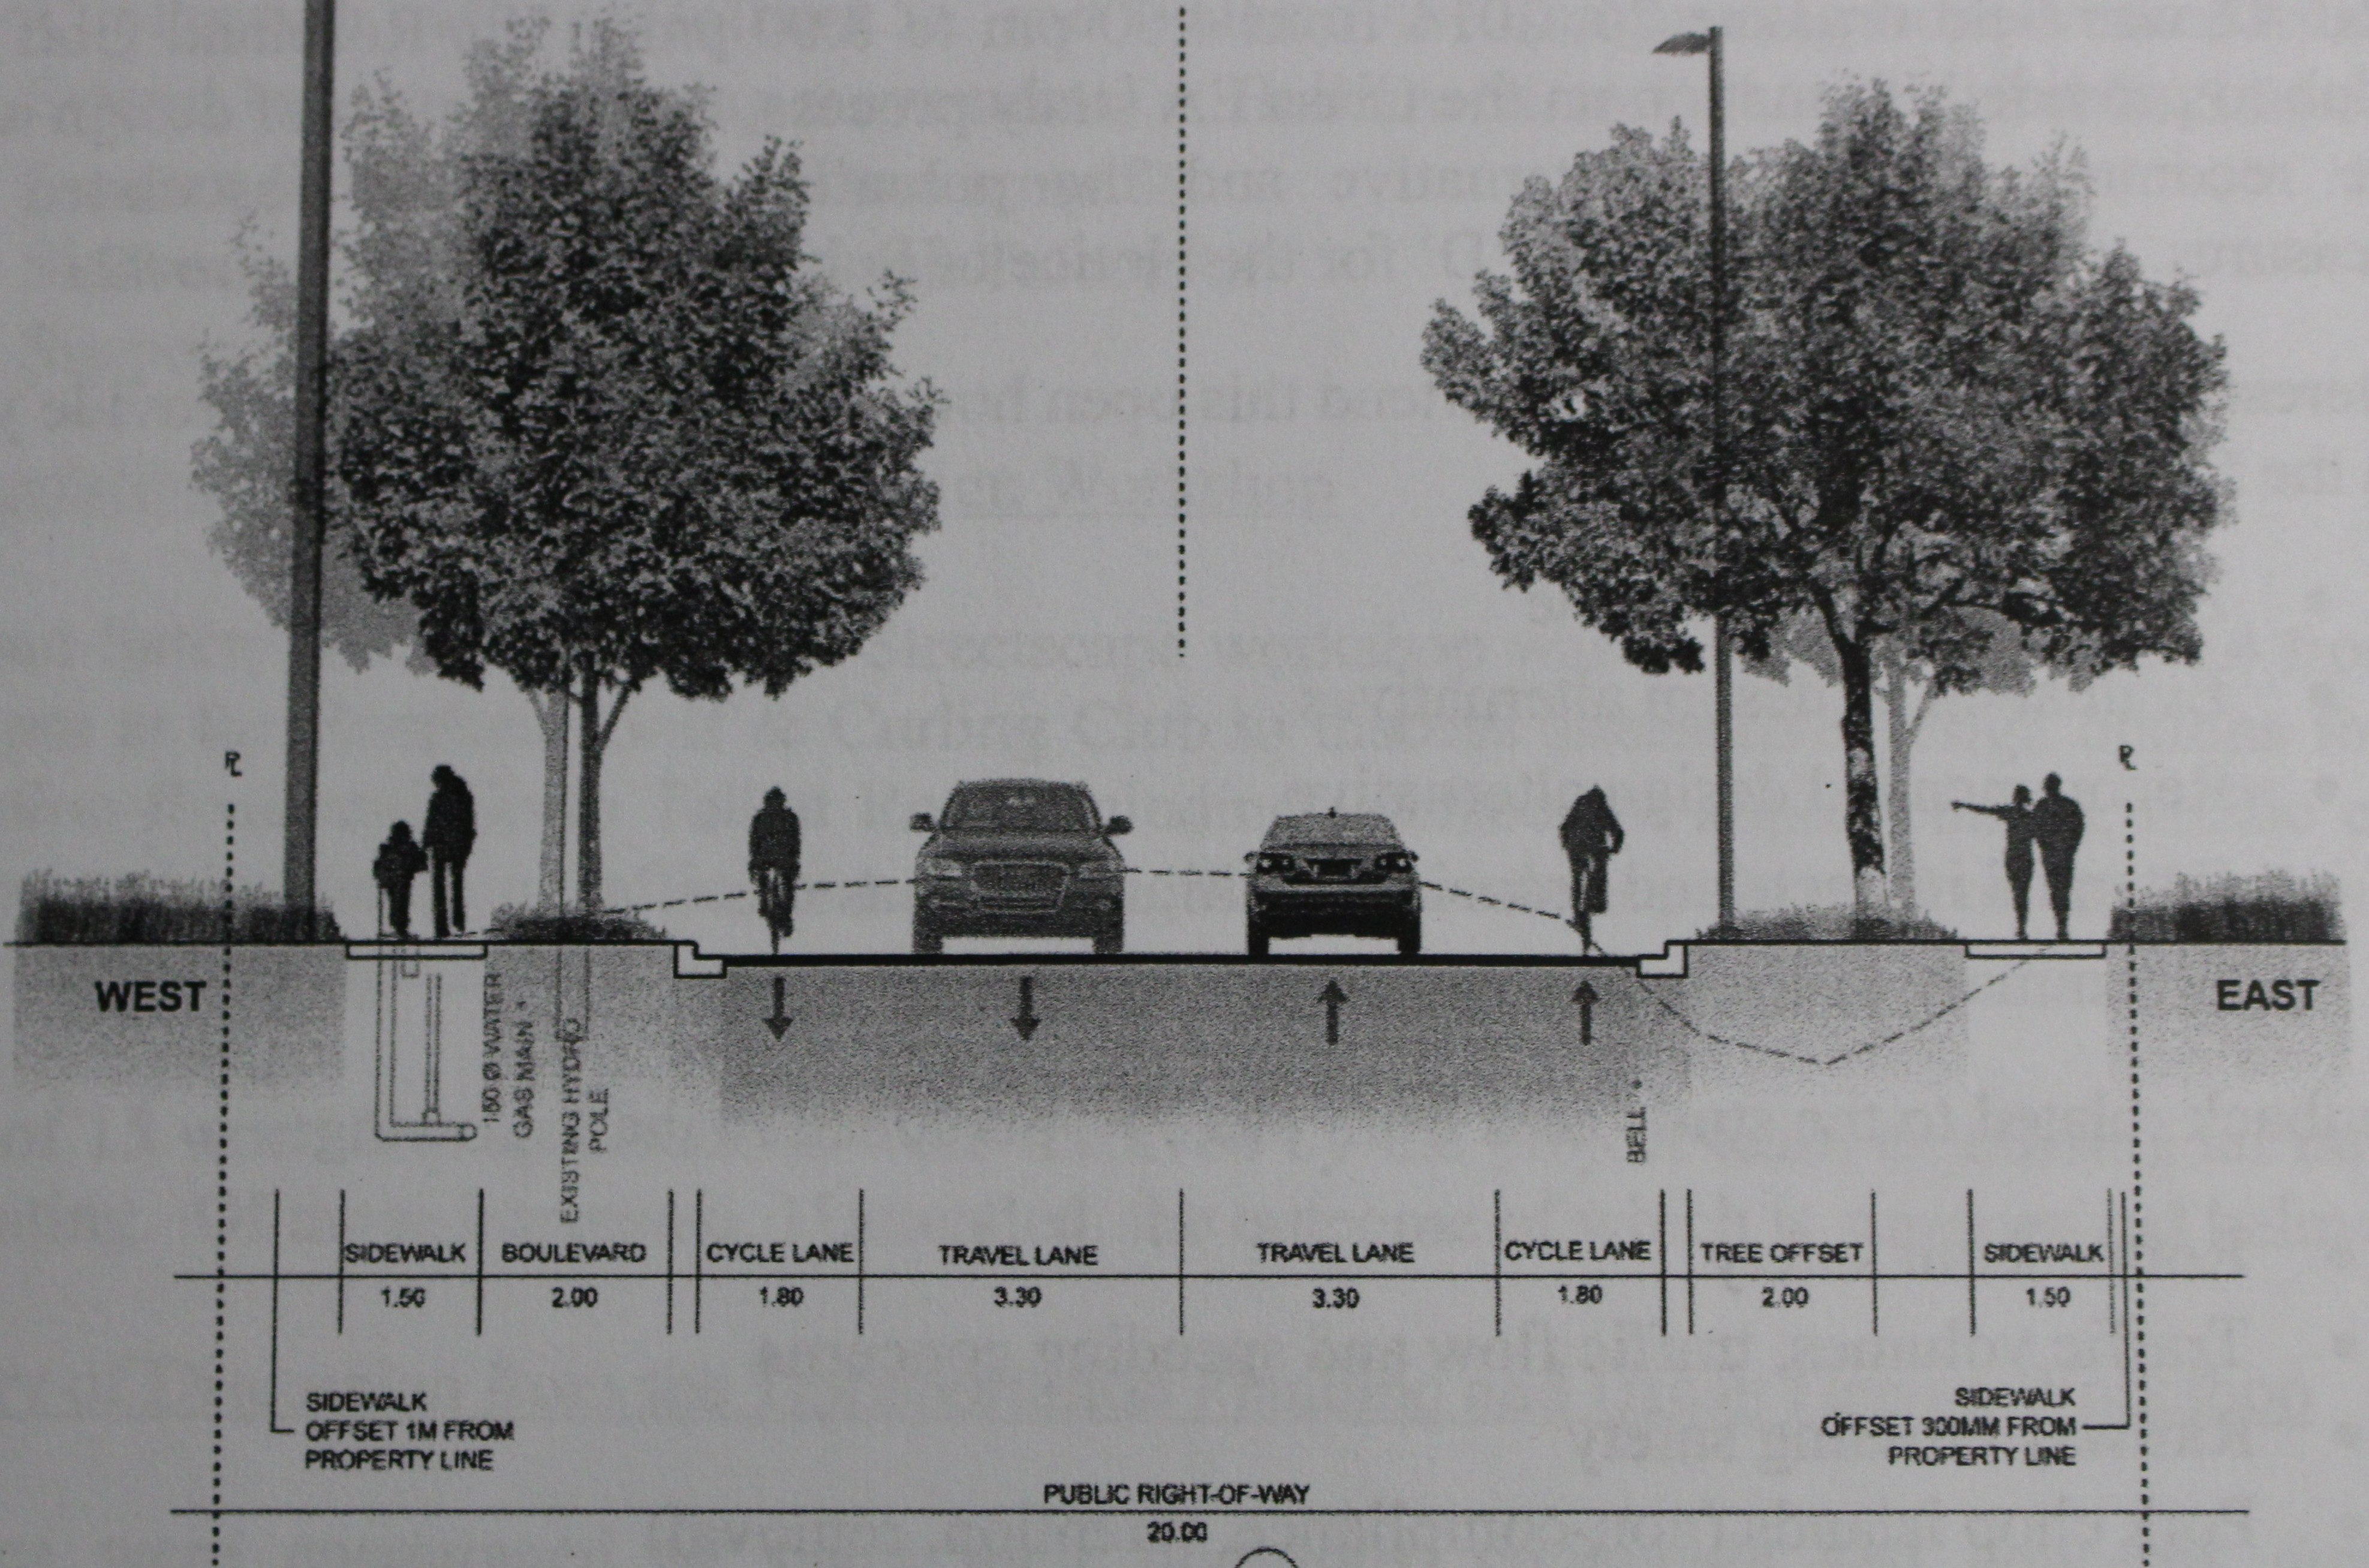 Drawing of proposed bike lanes, tree and sidewalk for Concession Rd. 6 and North Talbot Rd. in Windsor, June 1, 2015. (Photo by Mike Vlasveld)